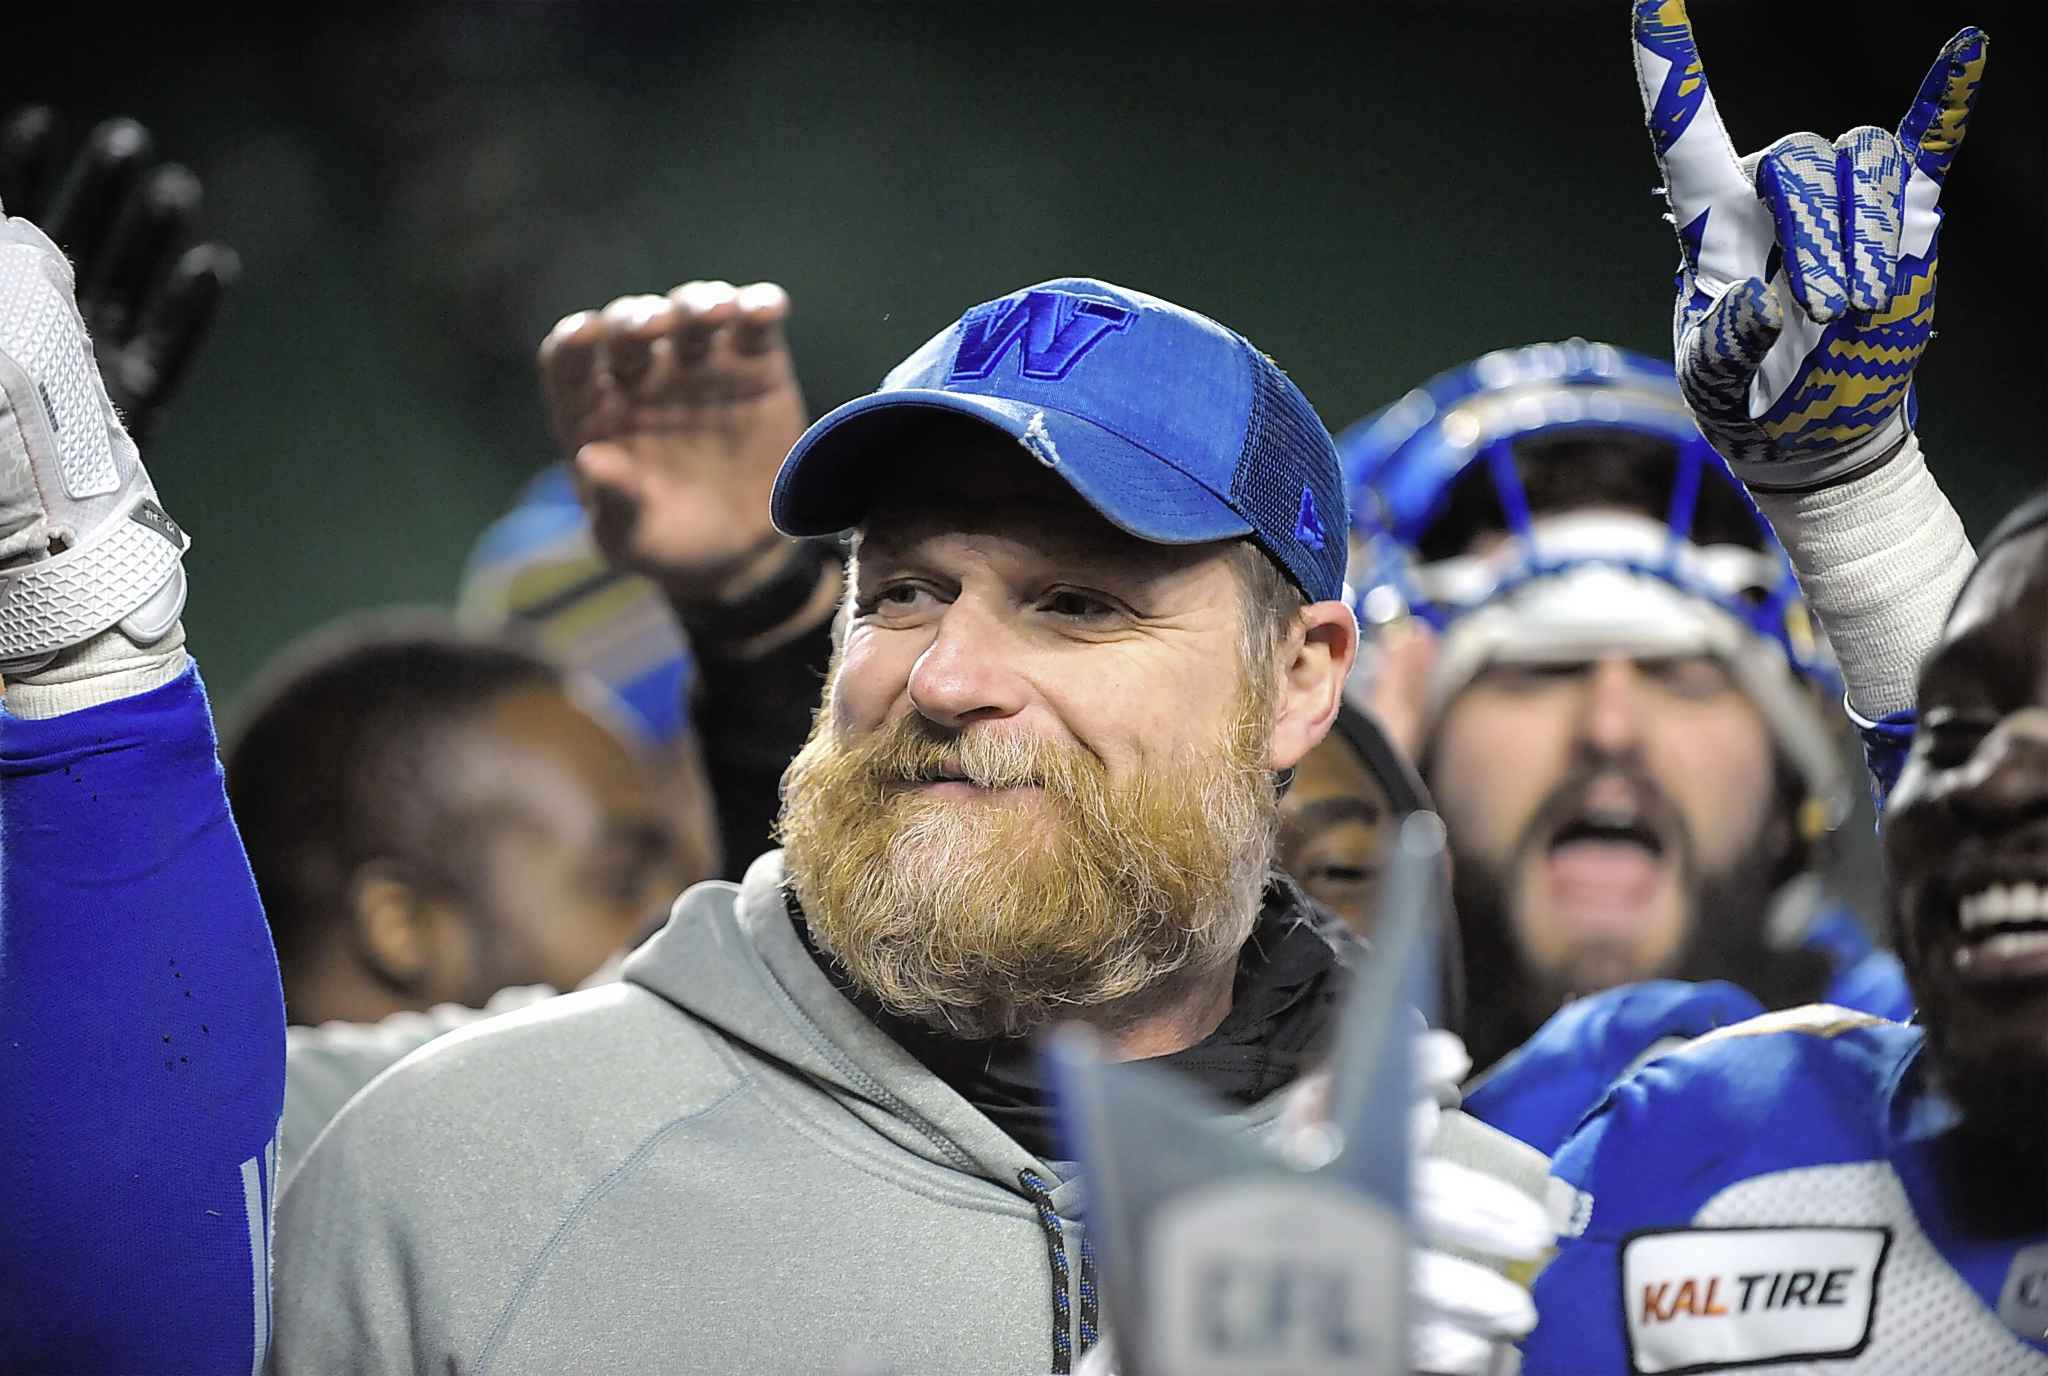 MARK TAYLOR / THE CANADIAN PRESS</p><p>Winnipeg Blue Bombers head coach Mike O'Shea celebrates with his team after defeating the Saskatchewan Roughriders in the CFL's West Division final.</p>